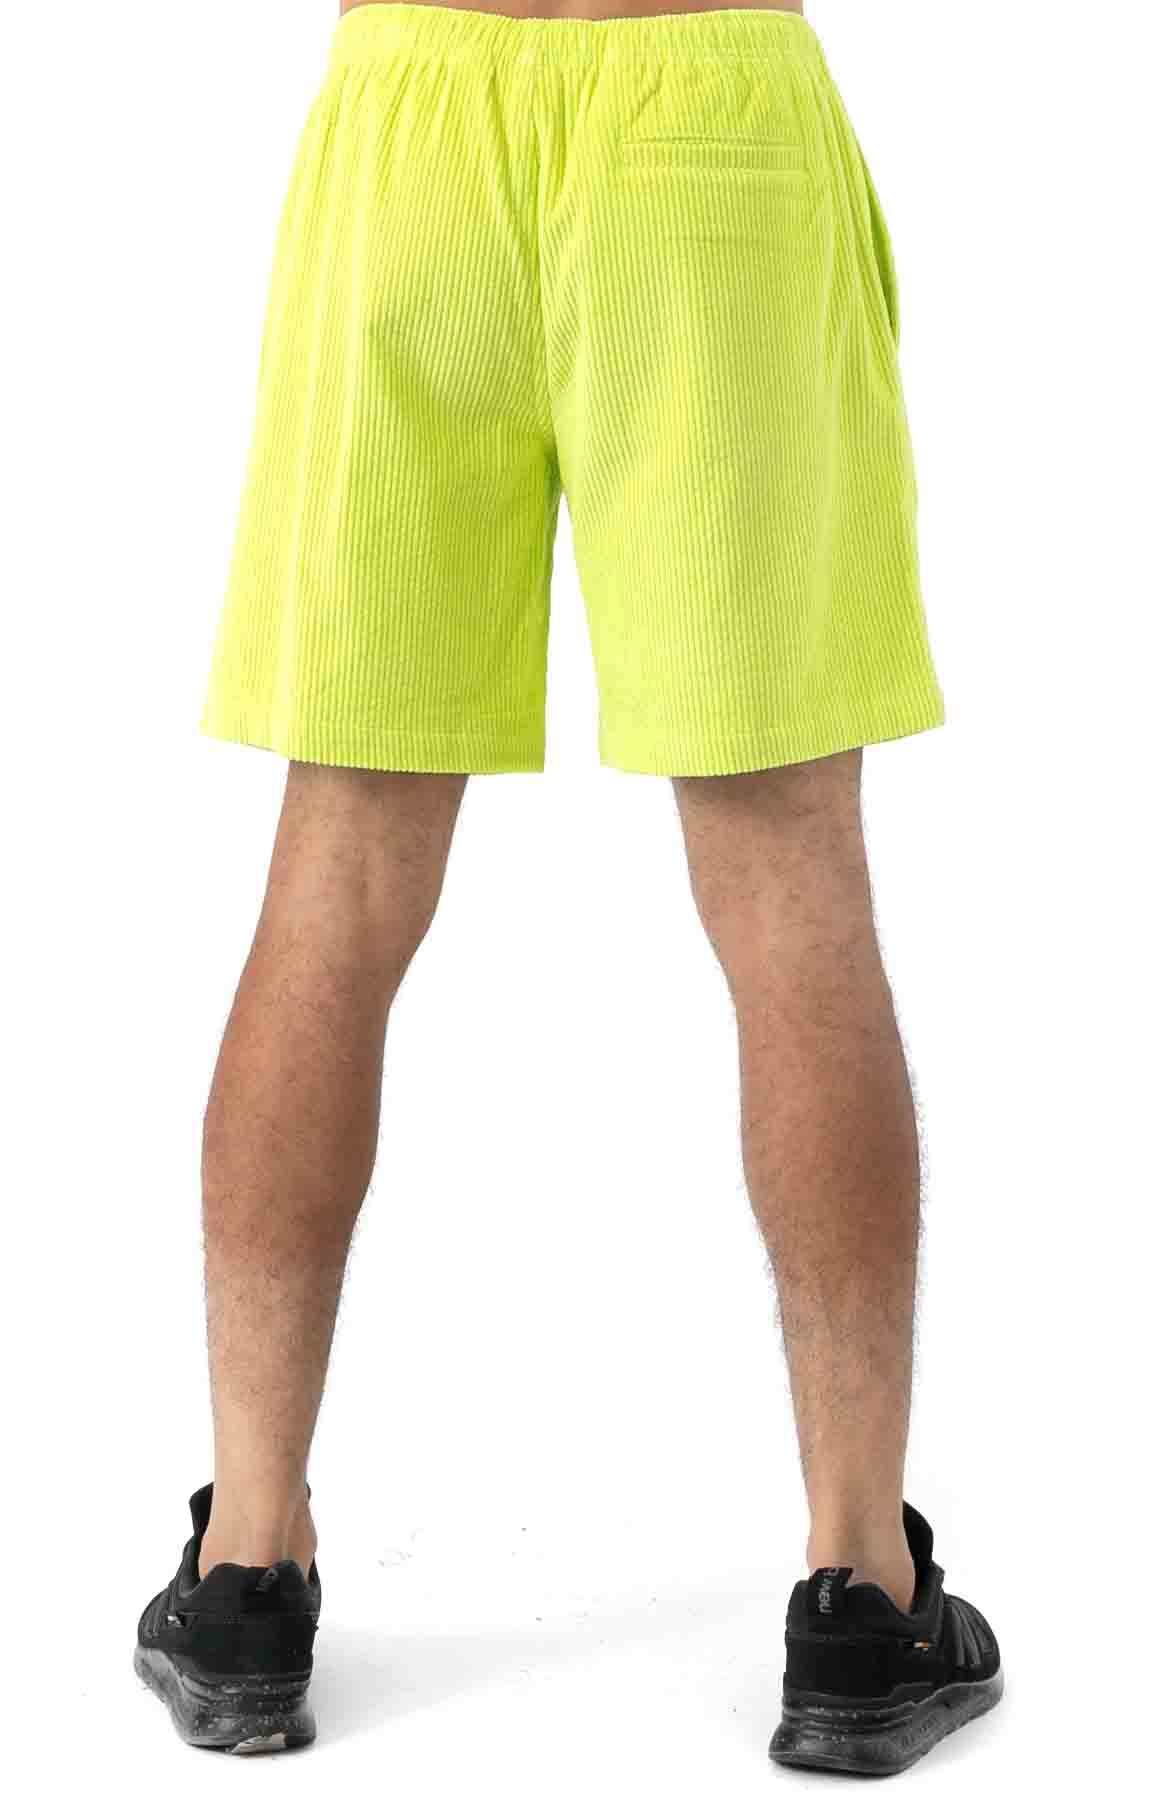 Wide Wale Corduroy Chill Shorts - Neon Green 3